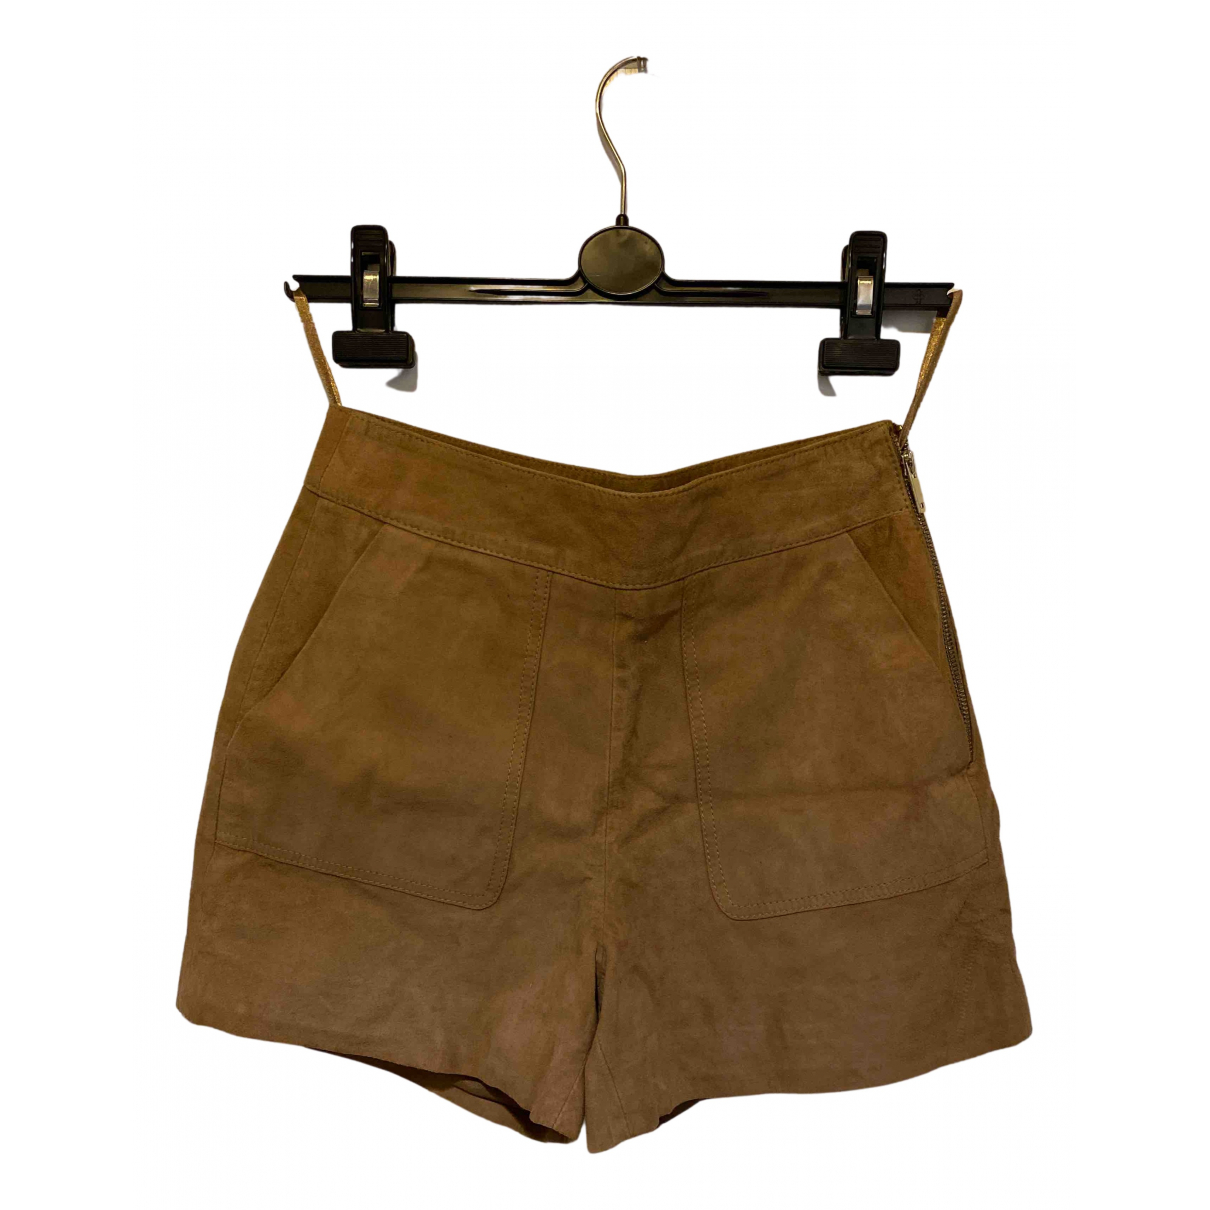 Reiss N Brown Suede Shorts for Women 6 UK